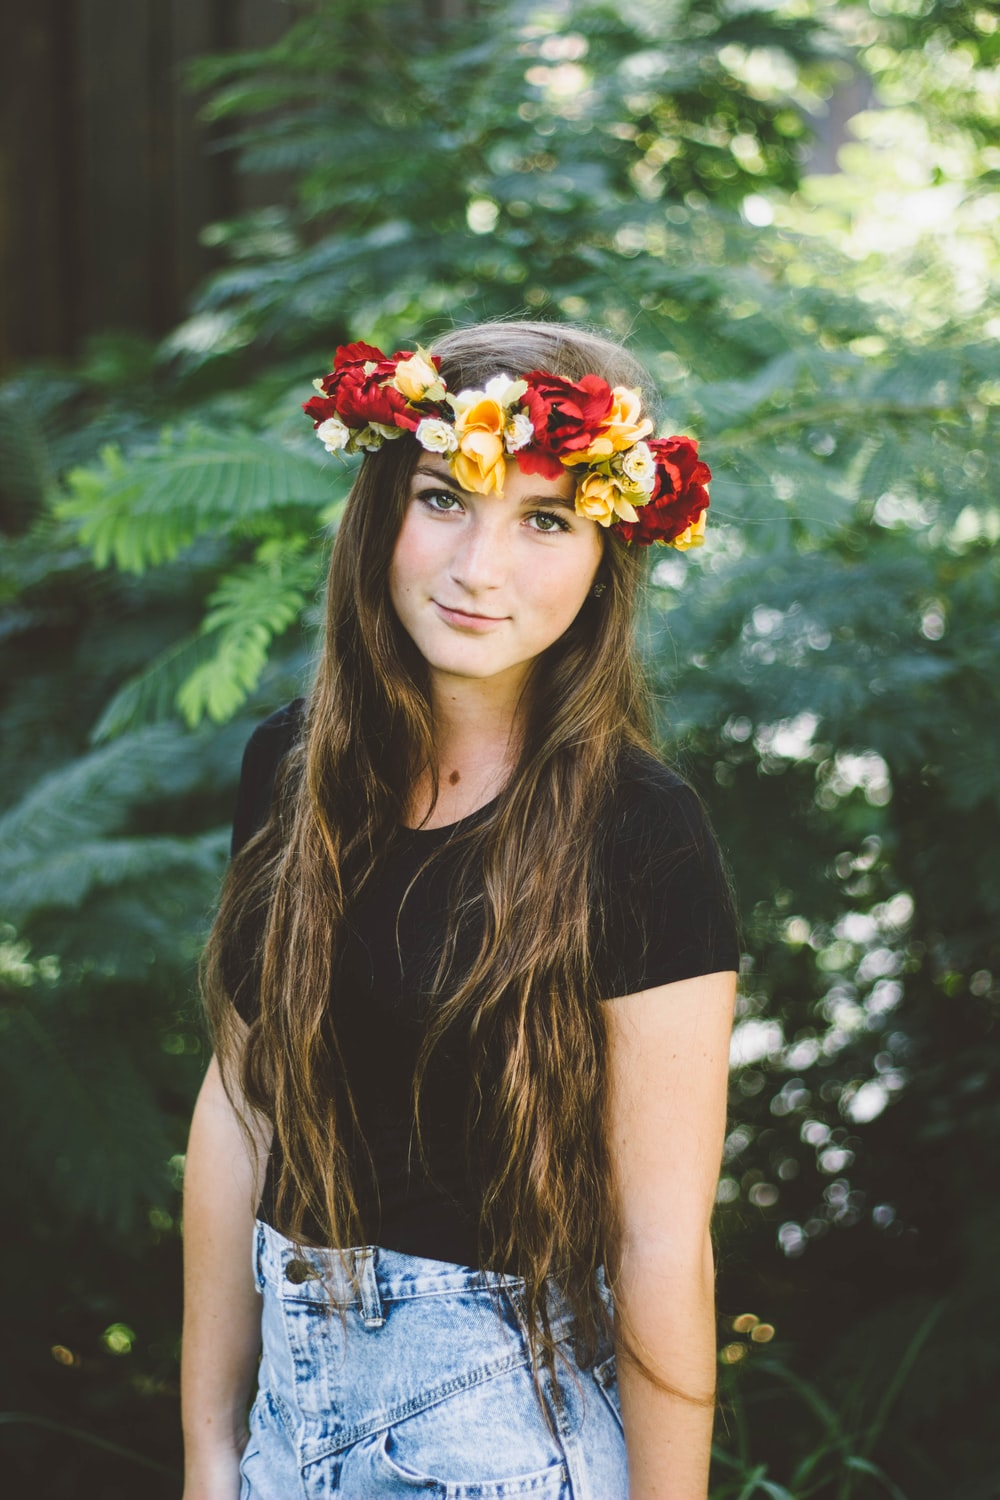 shallow focus photo of woman wearing floral headband